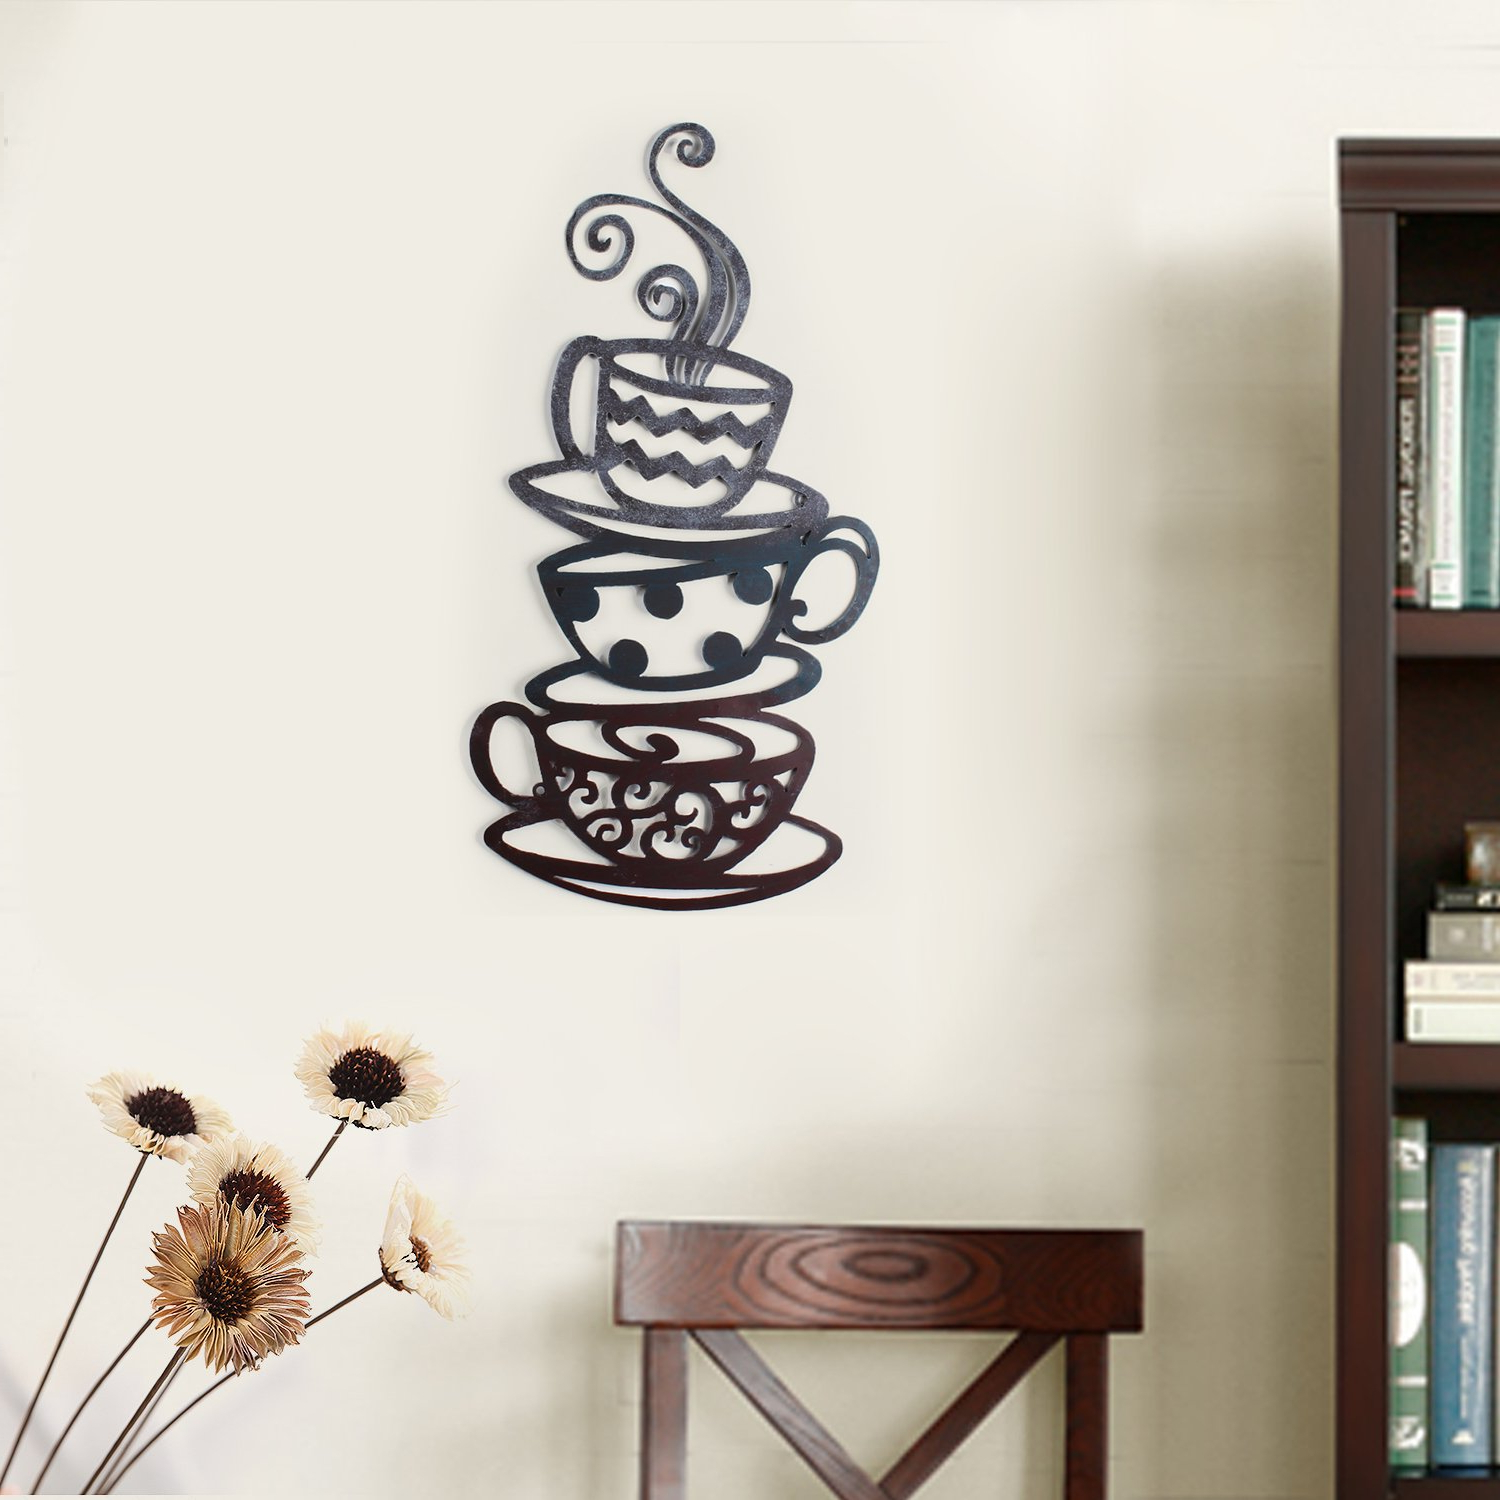 Most Recently Released Decorative Three Stacked Coffee Tea Cups Iron Widget Wall Decor In Amazon: Adeco Dn0008 Decorative Iron Wall Hanging Accents, Three (Gallery 3 of 20)